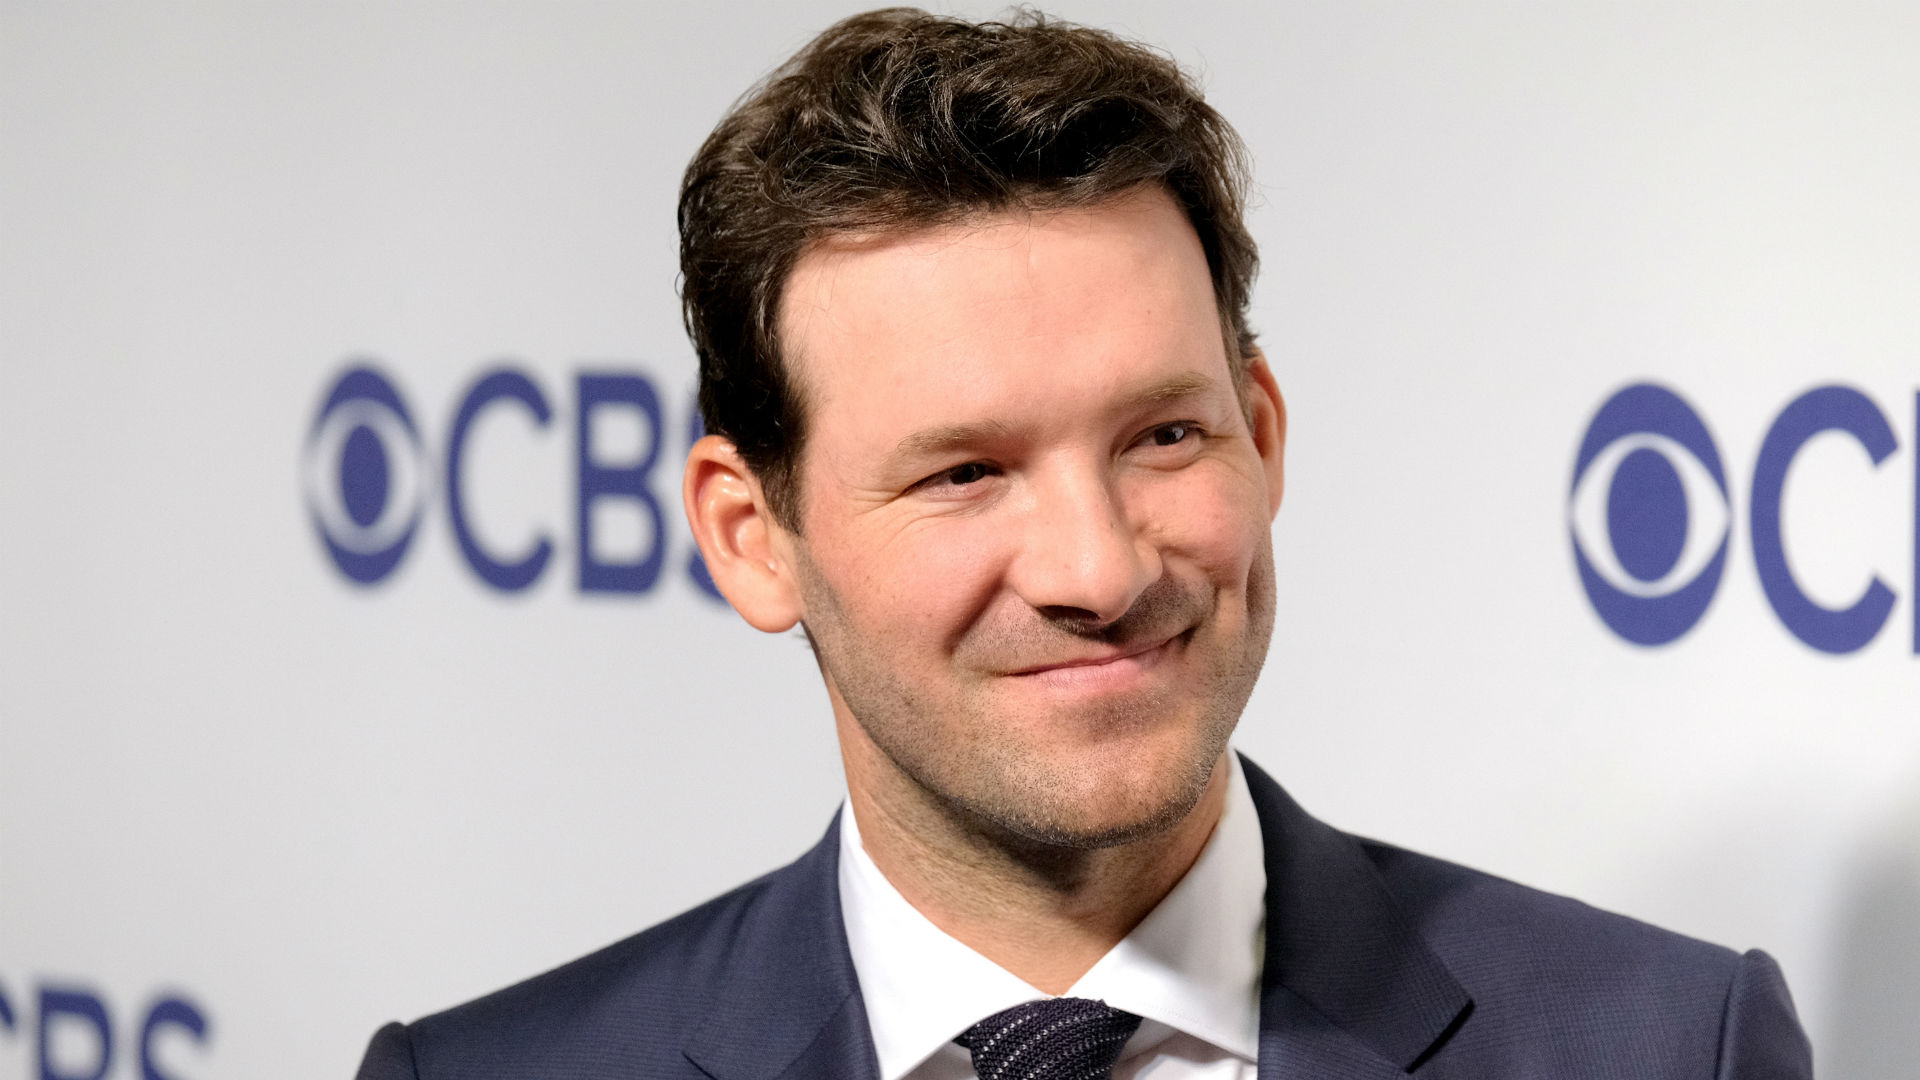 Tony Romo predictions: How 'Romostradamus' can see plays before they happen on CBS broadcast